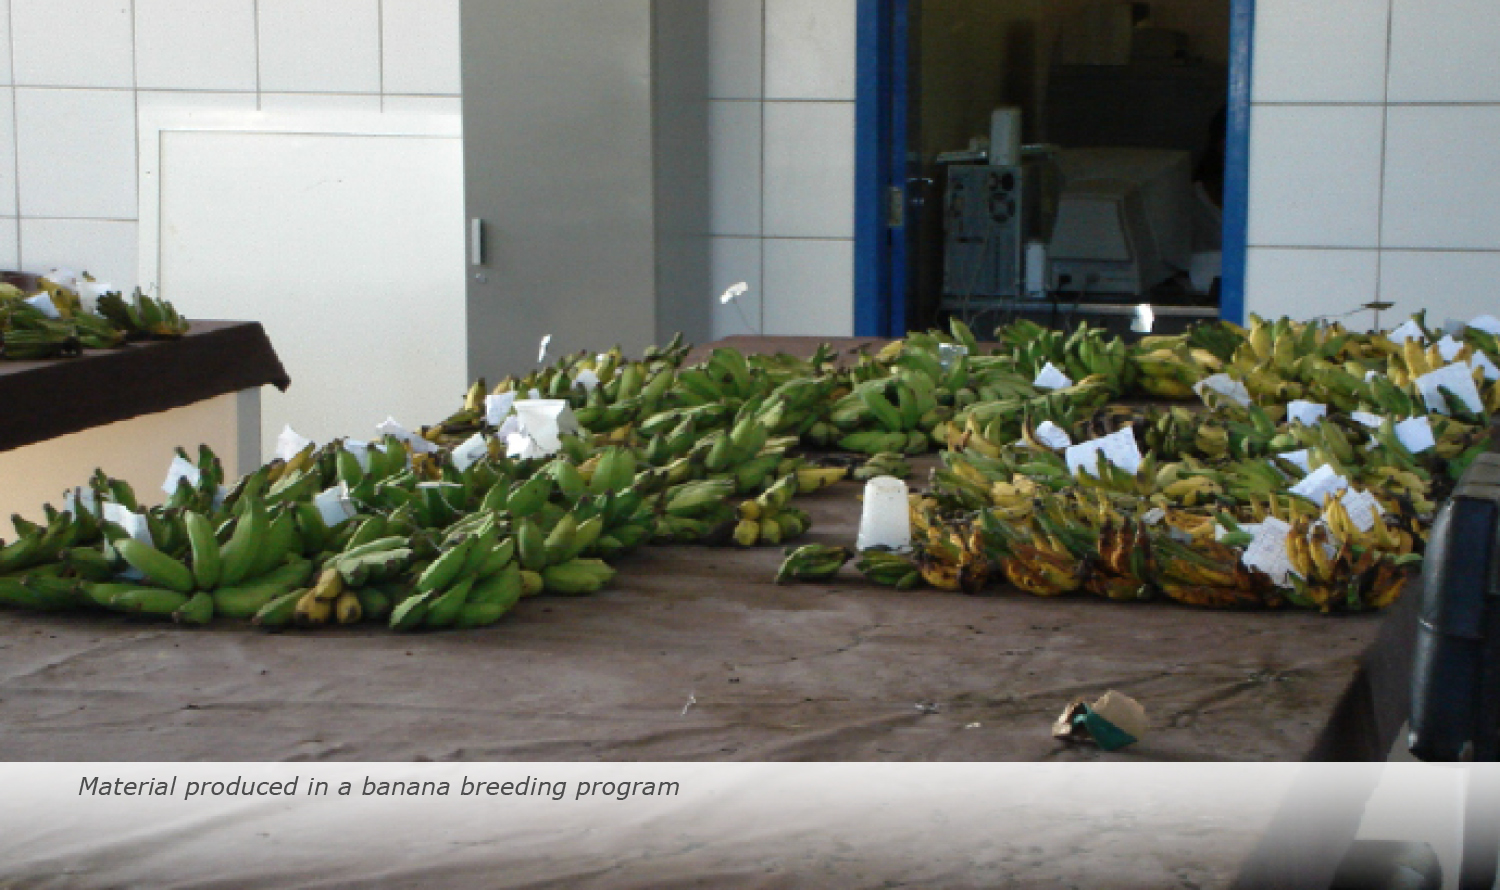 Info & Facts: Material produced in a banana breeding programme